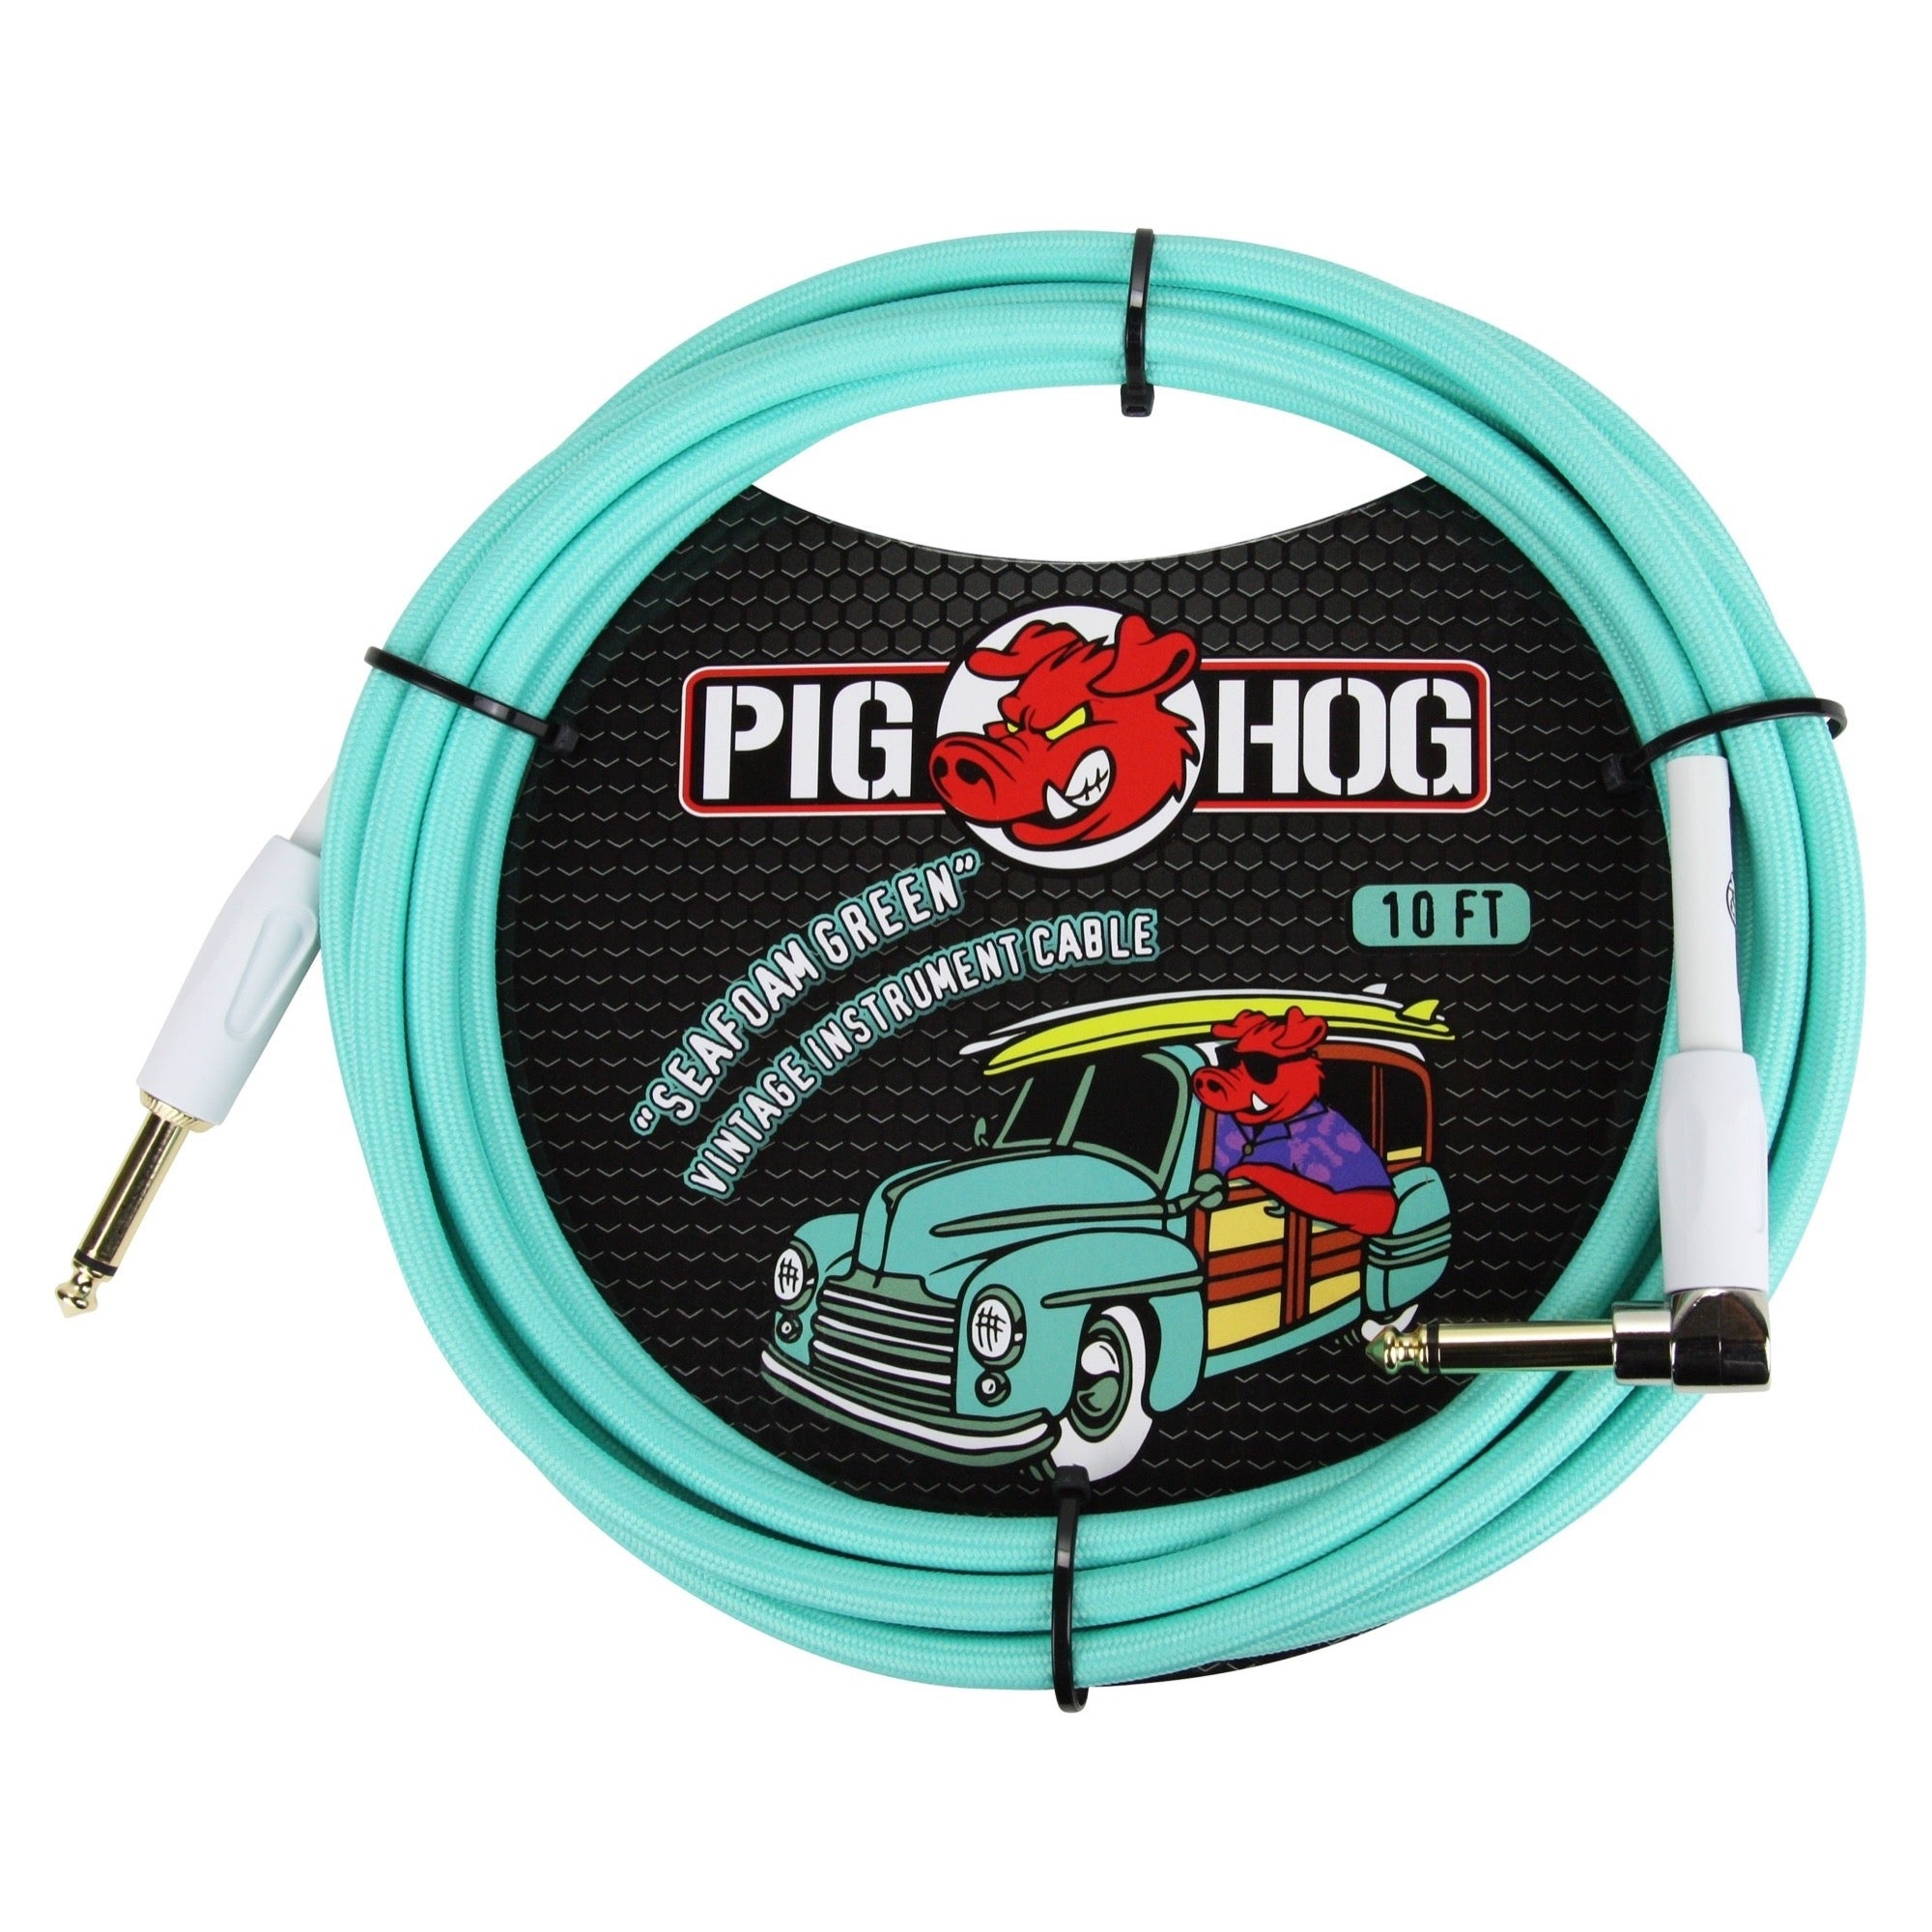 Pig Hog Color Instrument Cable, 1/4 Inch Straight to 1/4 Inch Right Angle, Sea Foam Green, 10 Foot